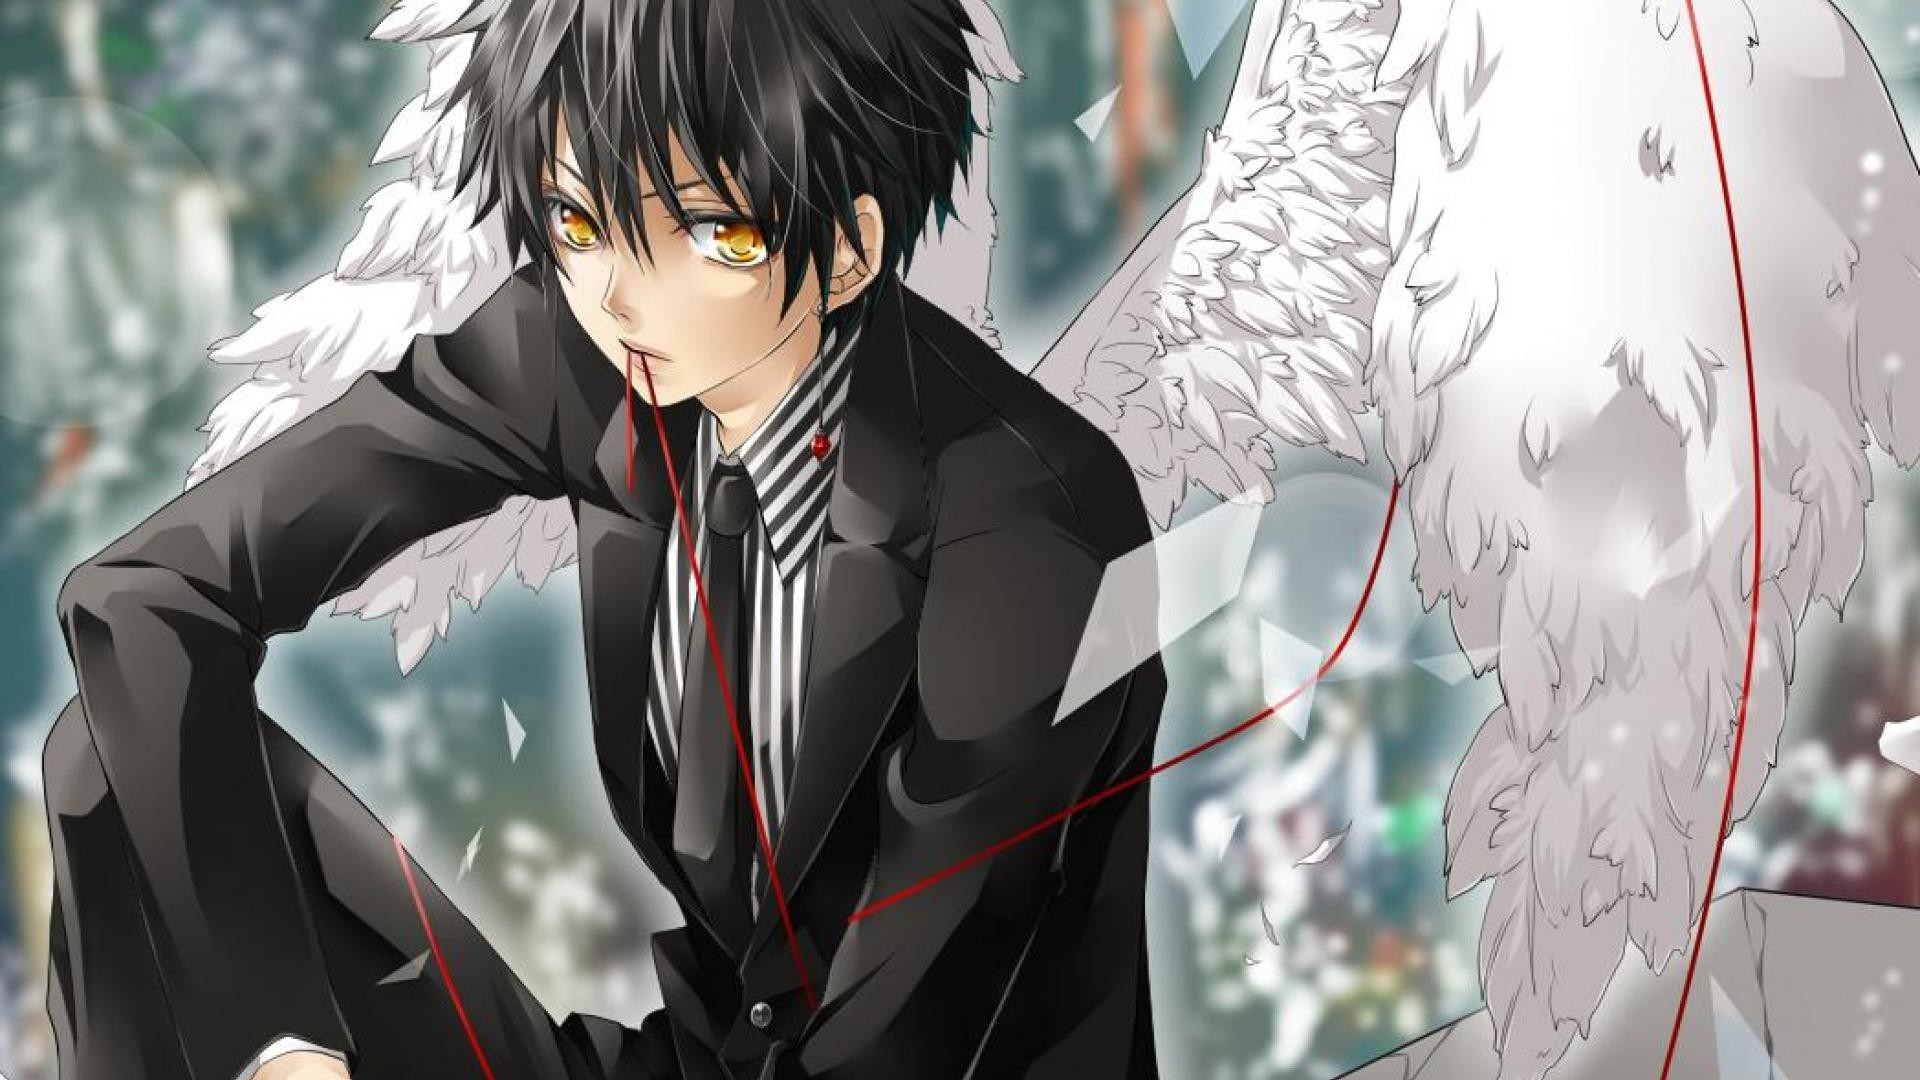 Cool wallpapers for boys 65 images - Cool anime guy ...